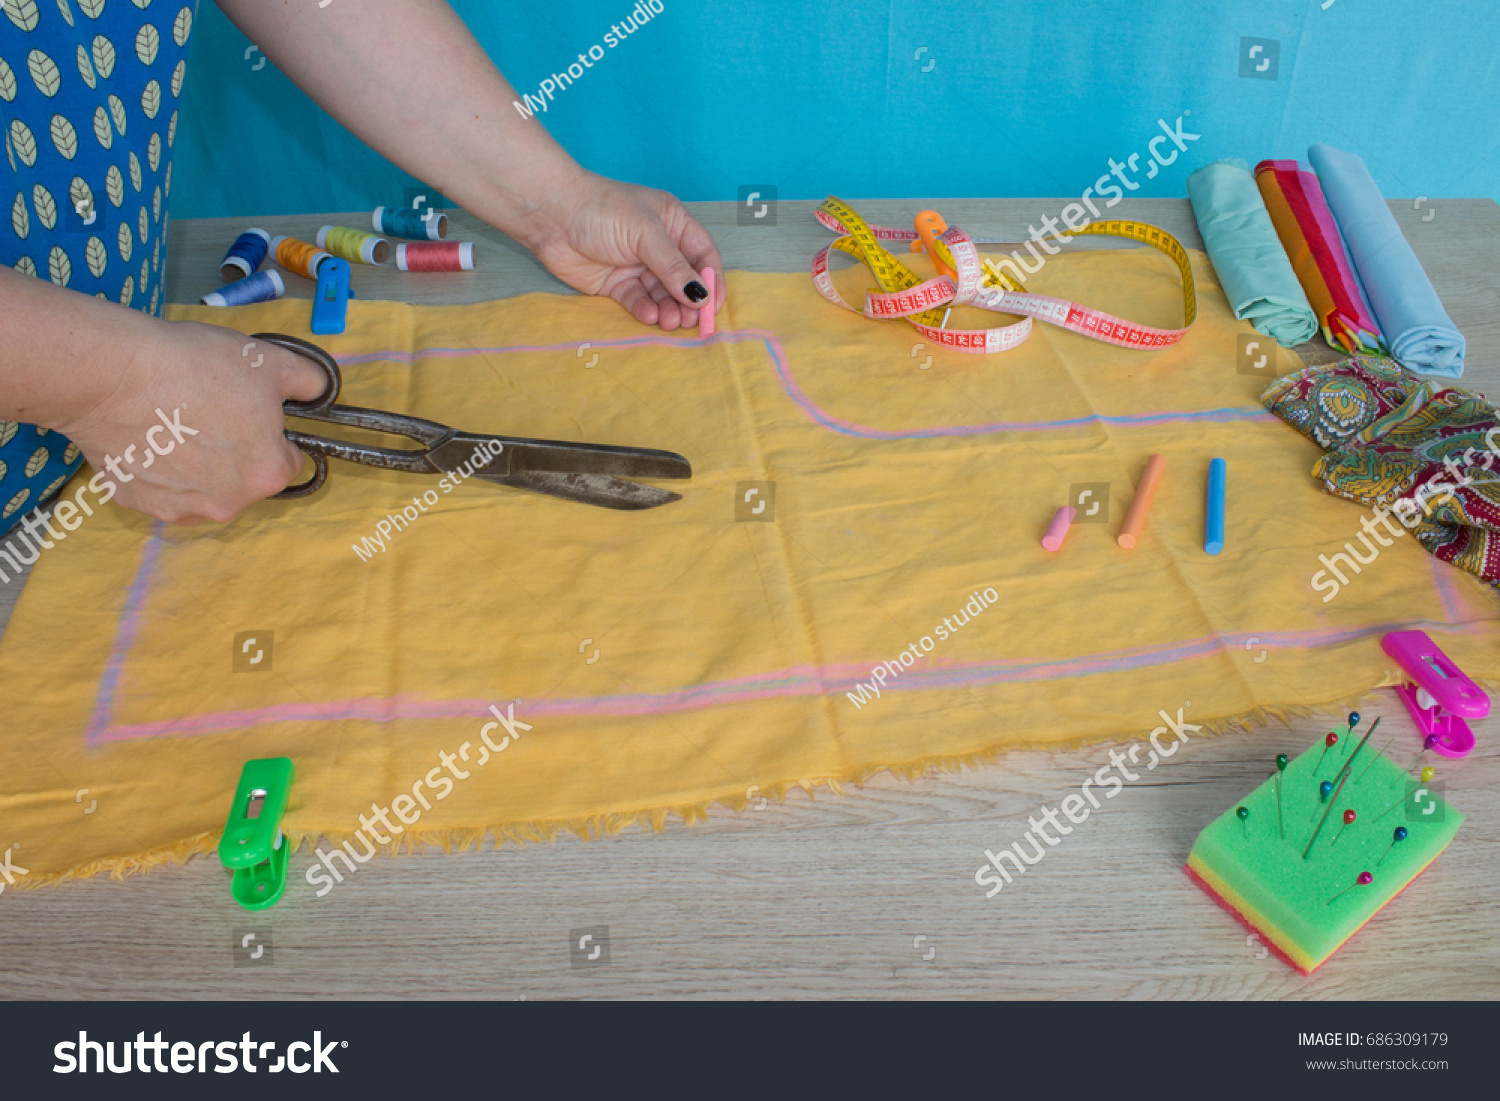 woman hands sewing yellow cloth outdoors. Tailor hands working with scissor and suit textile cloth #686309179